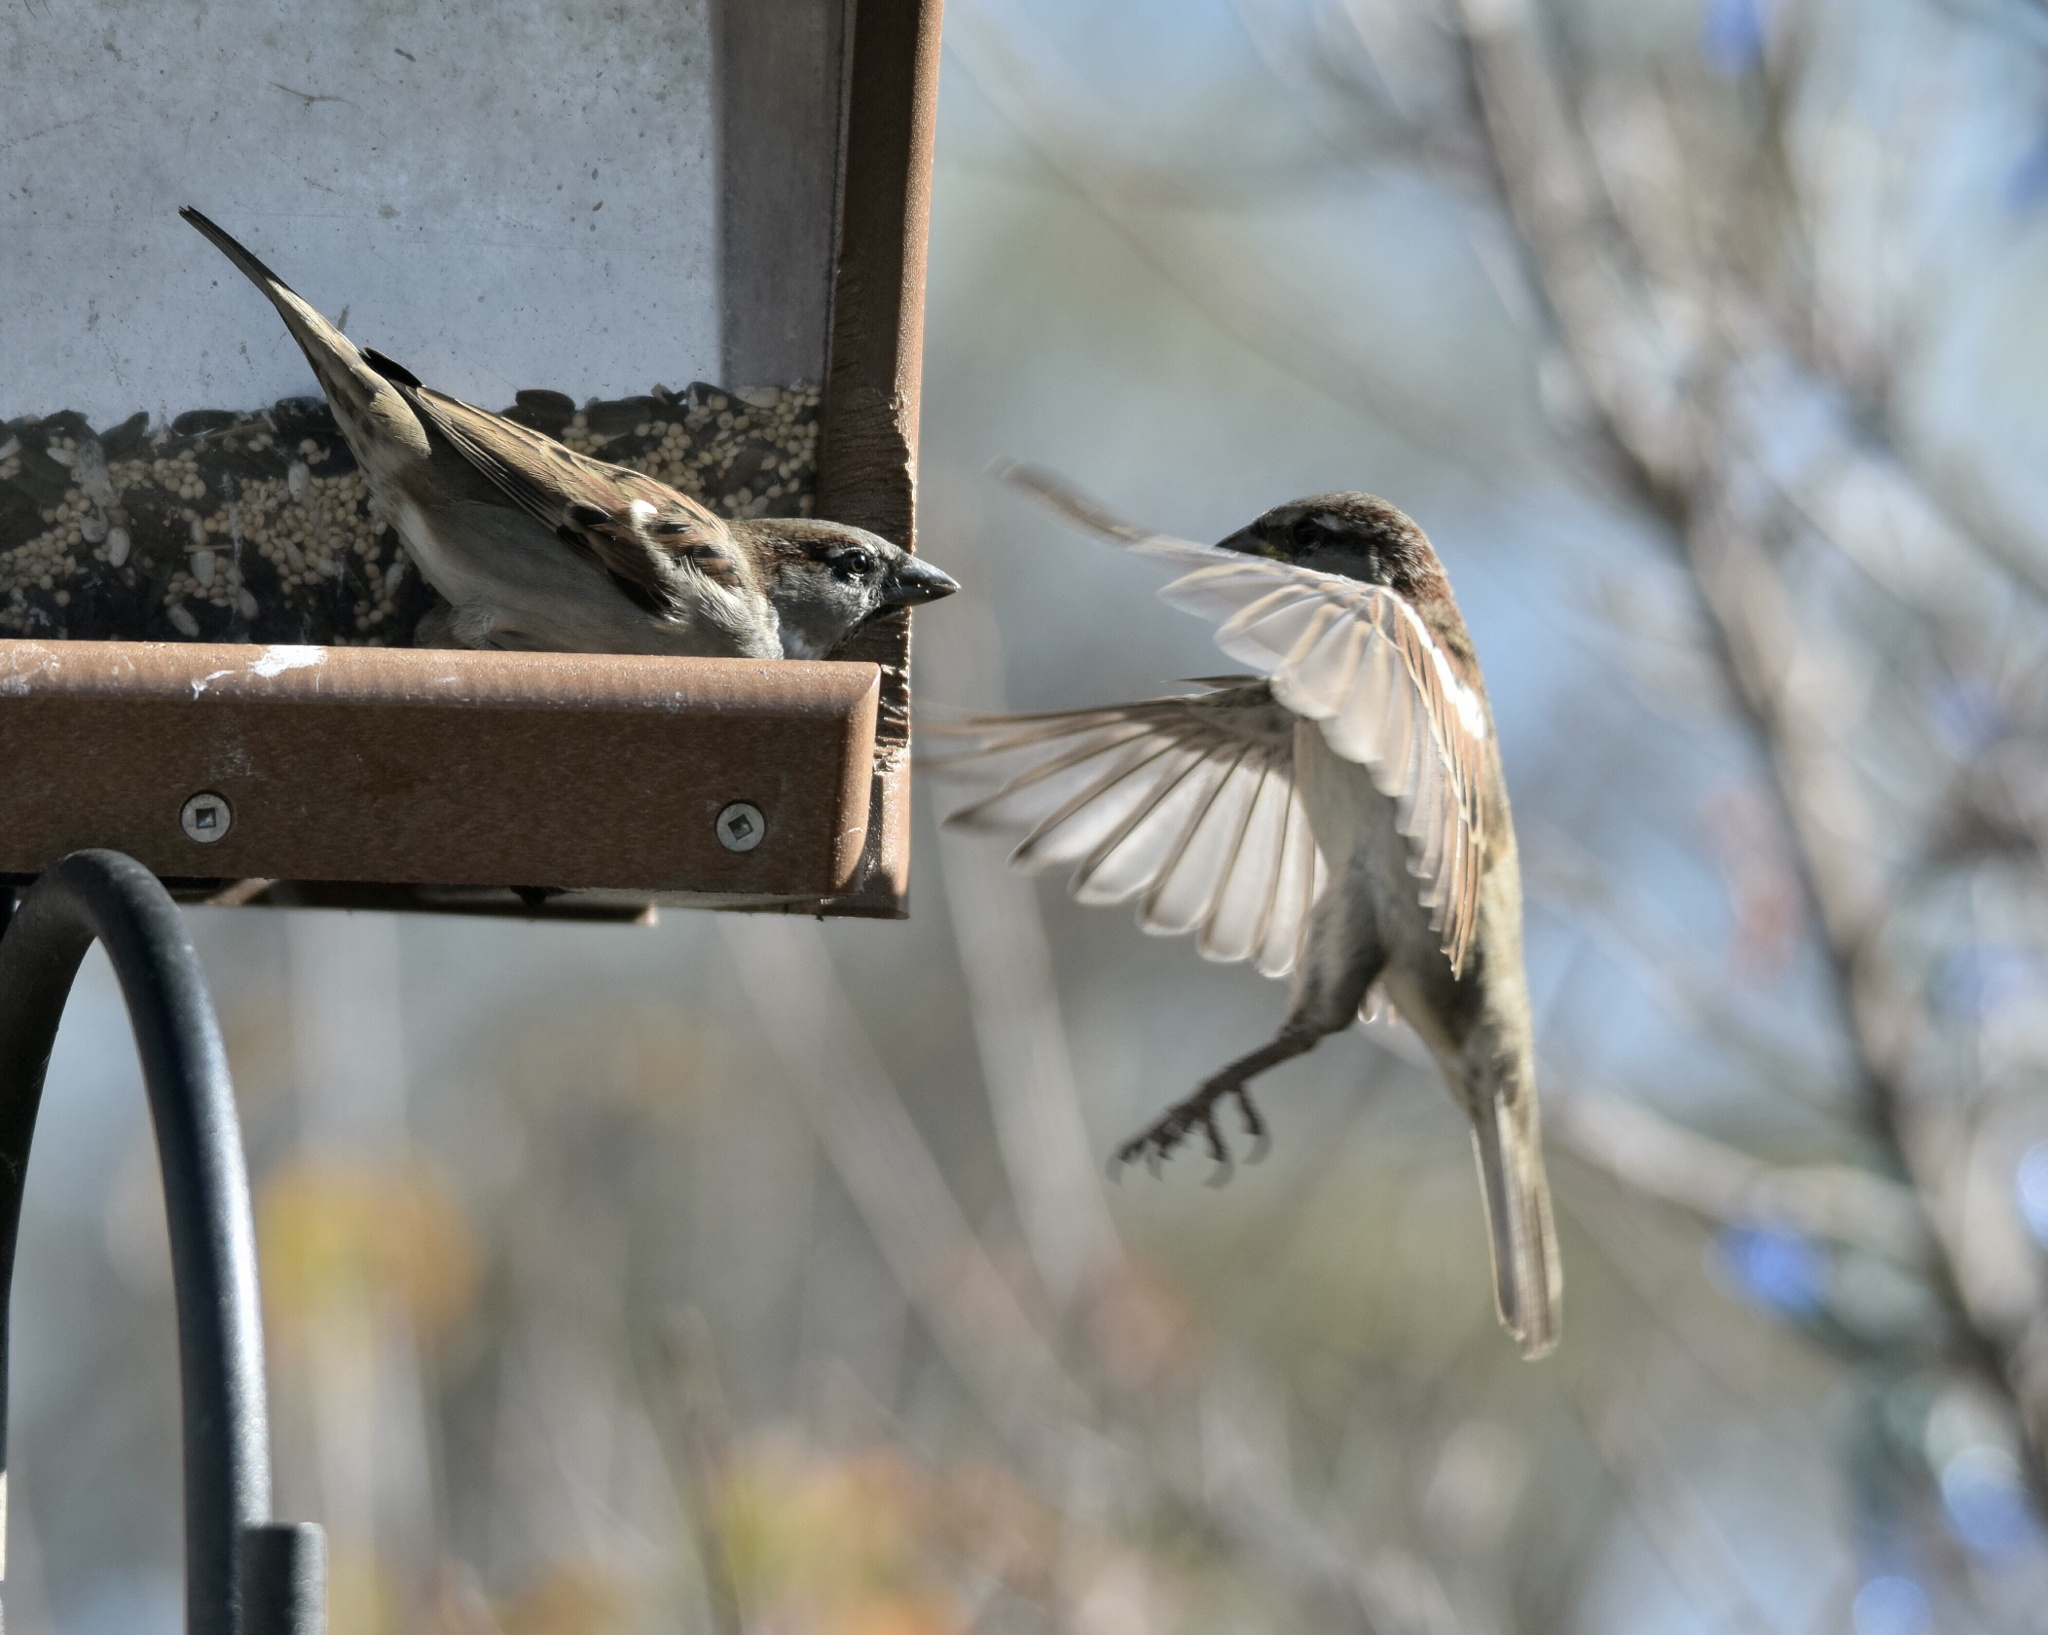 Two birds at a Feeder by dan.tomkins